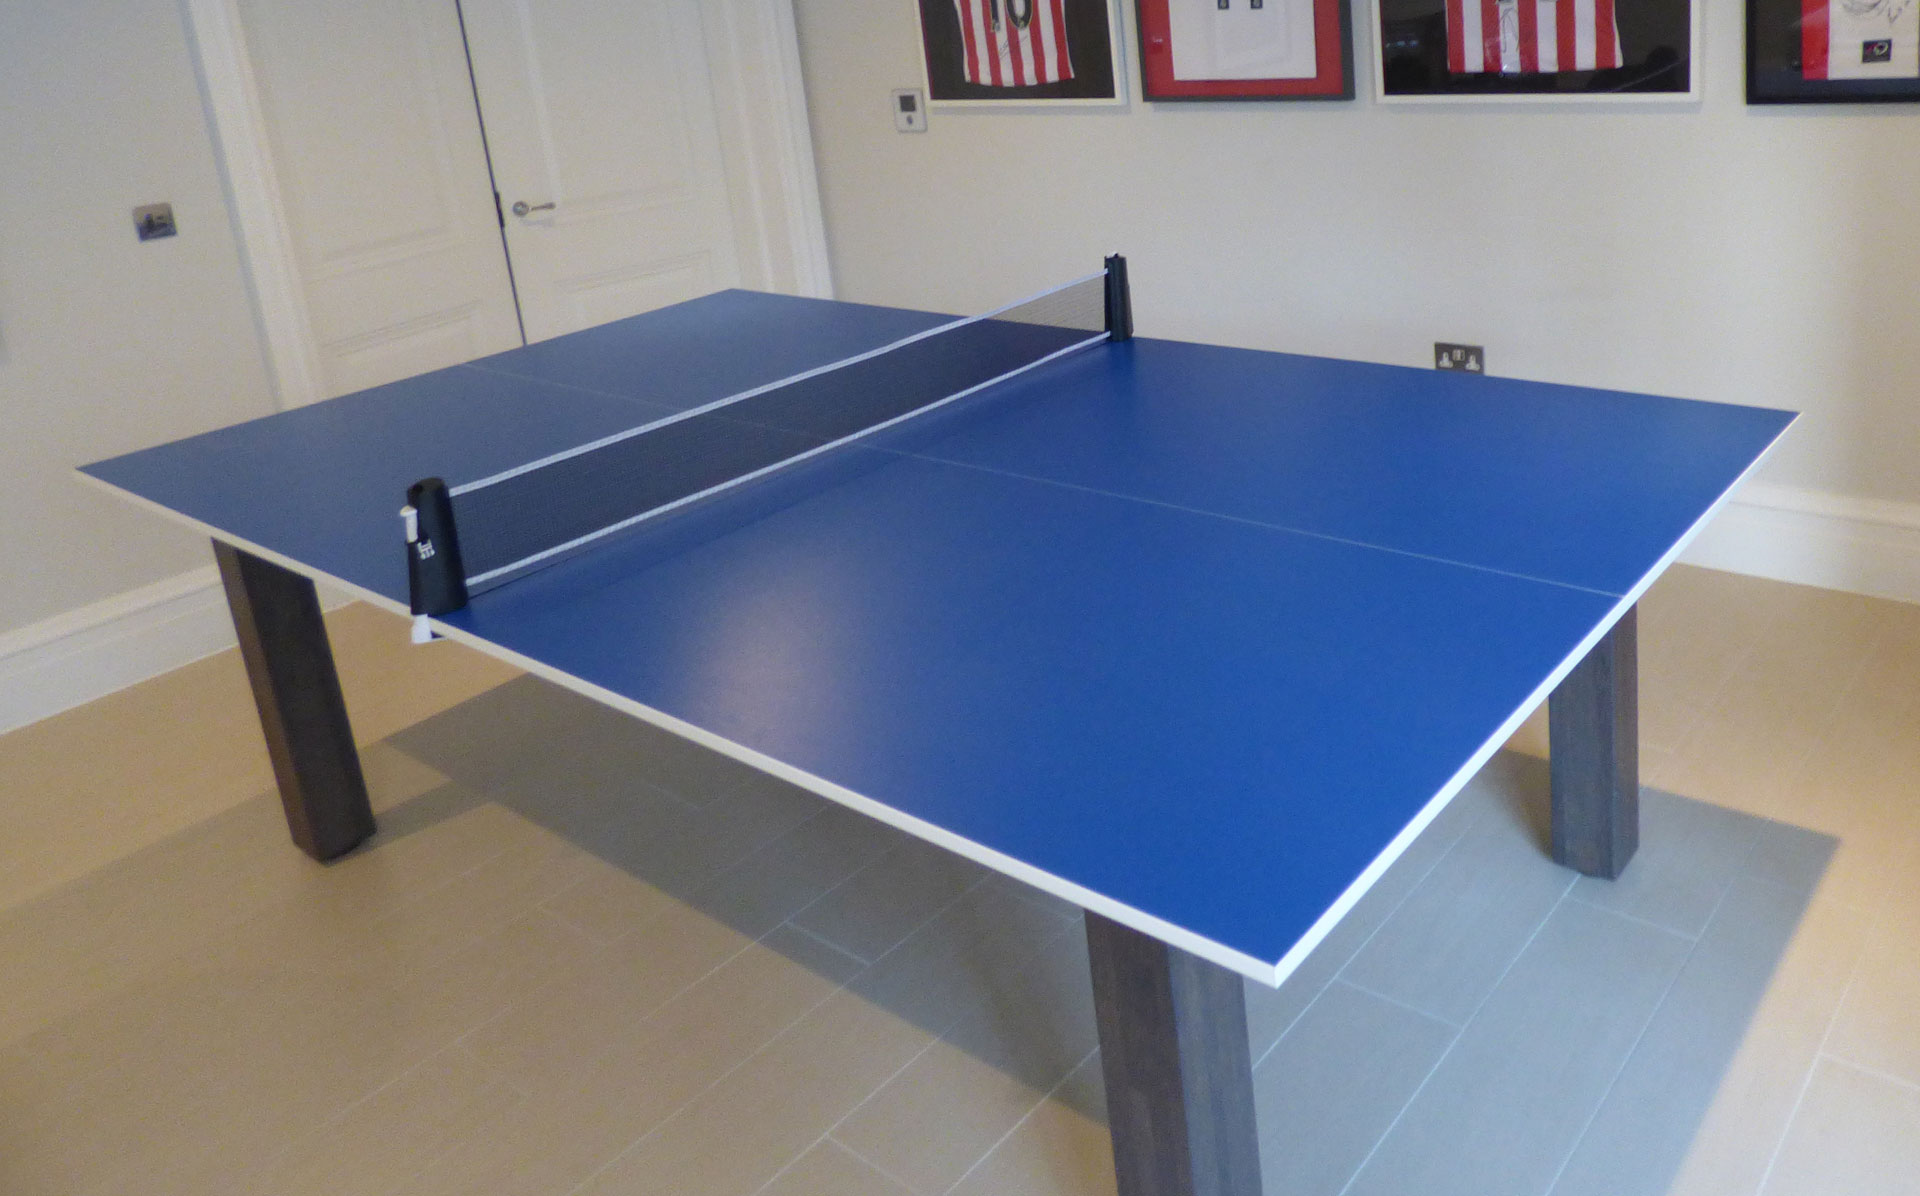 Combined pool table table tennis table luxury pool tables - How much room do i need for a pool table ...